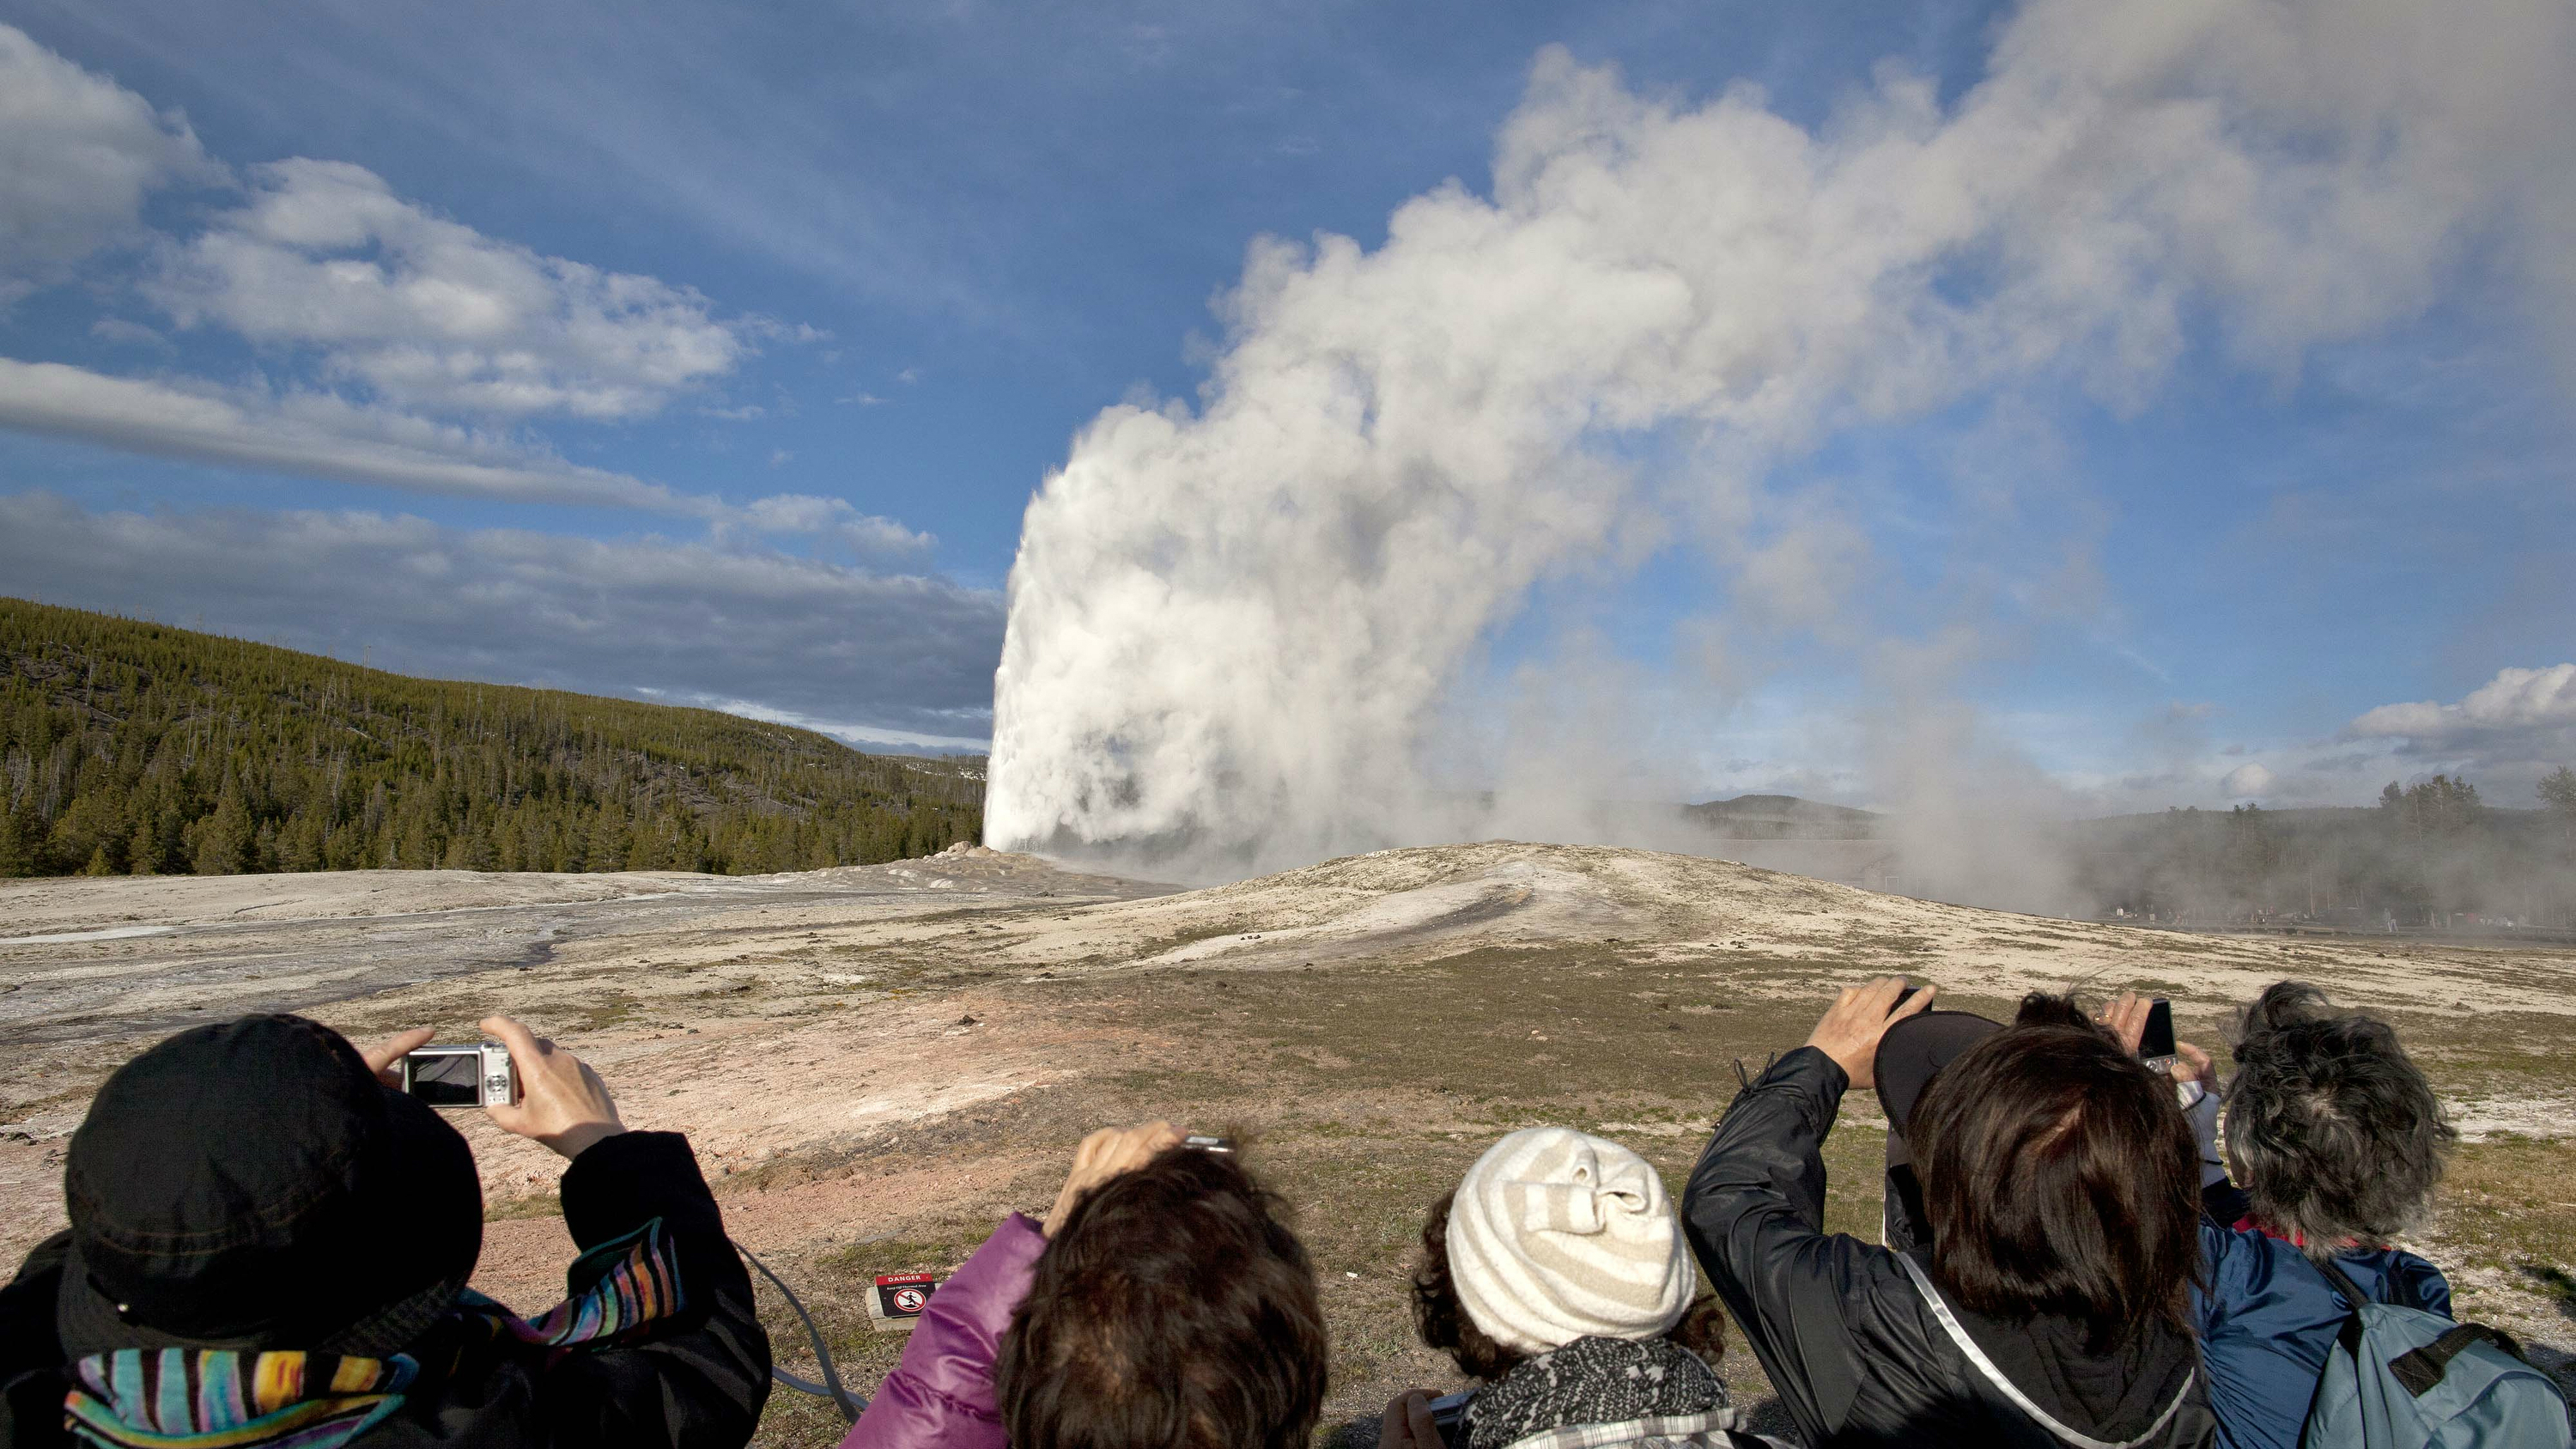 The volcano should not cause mass hysteria.